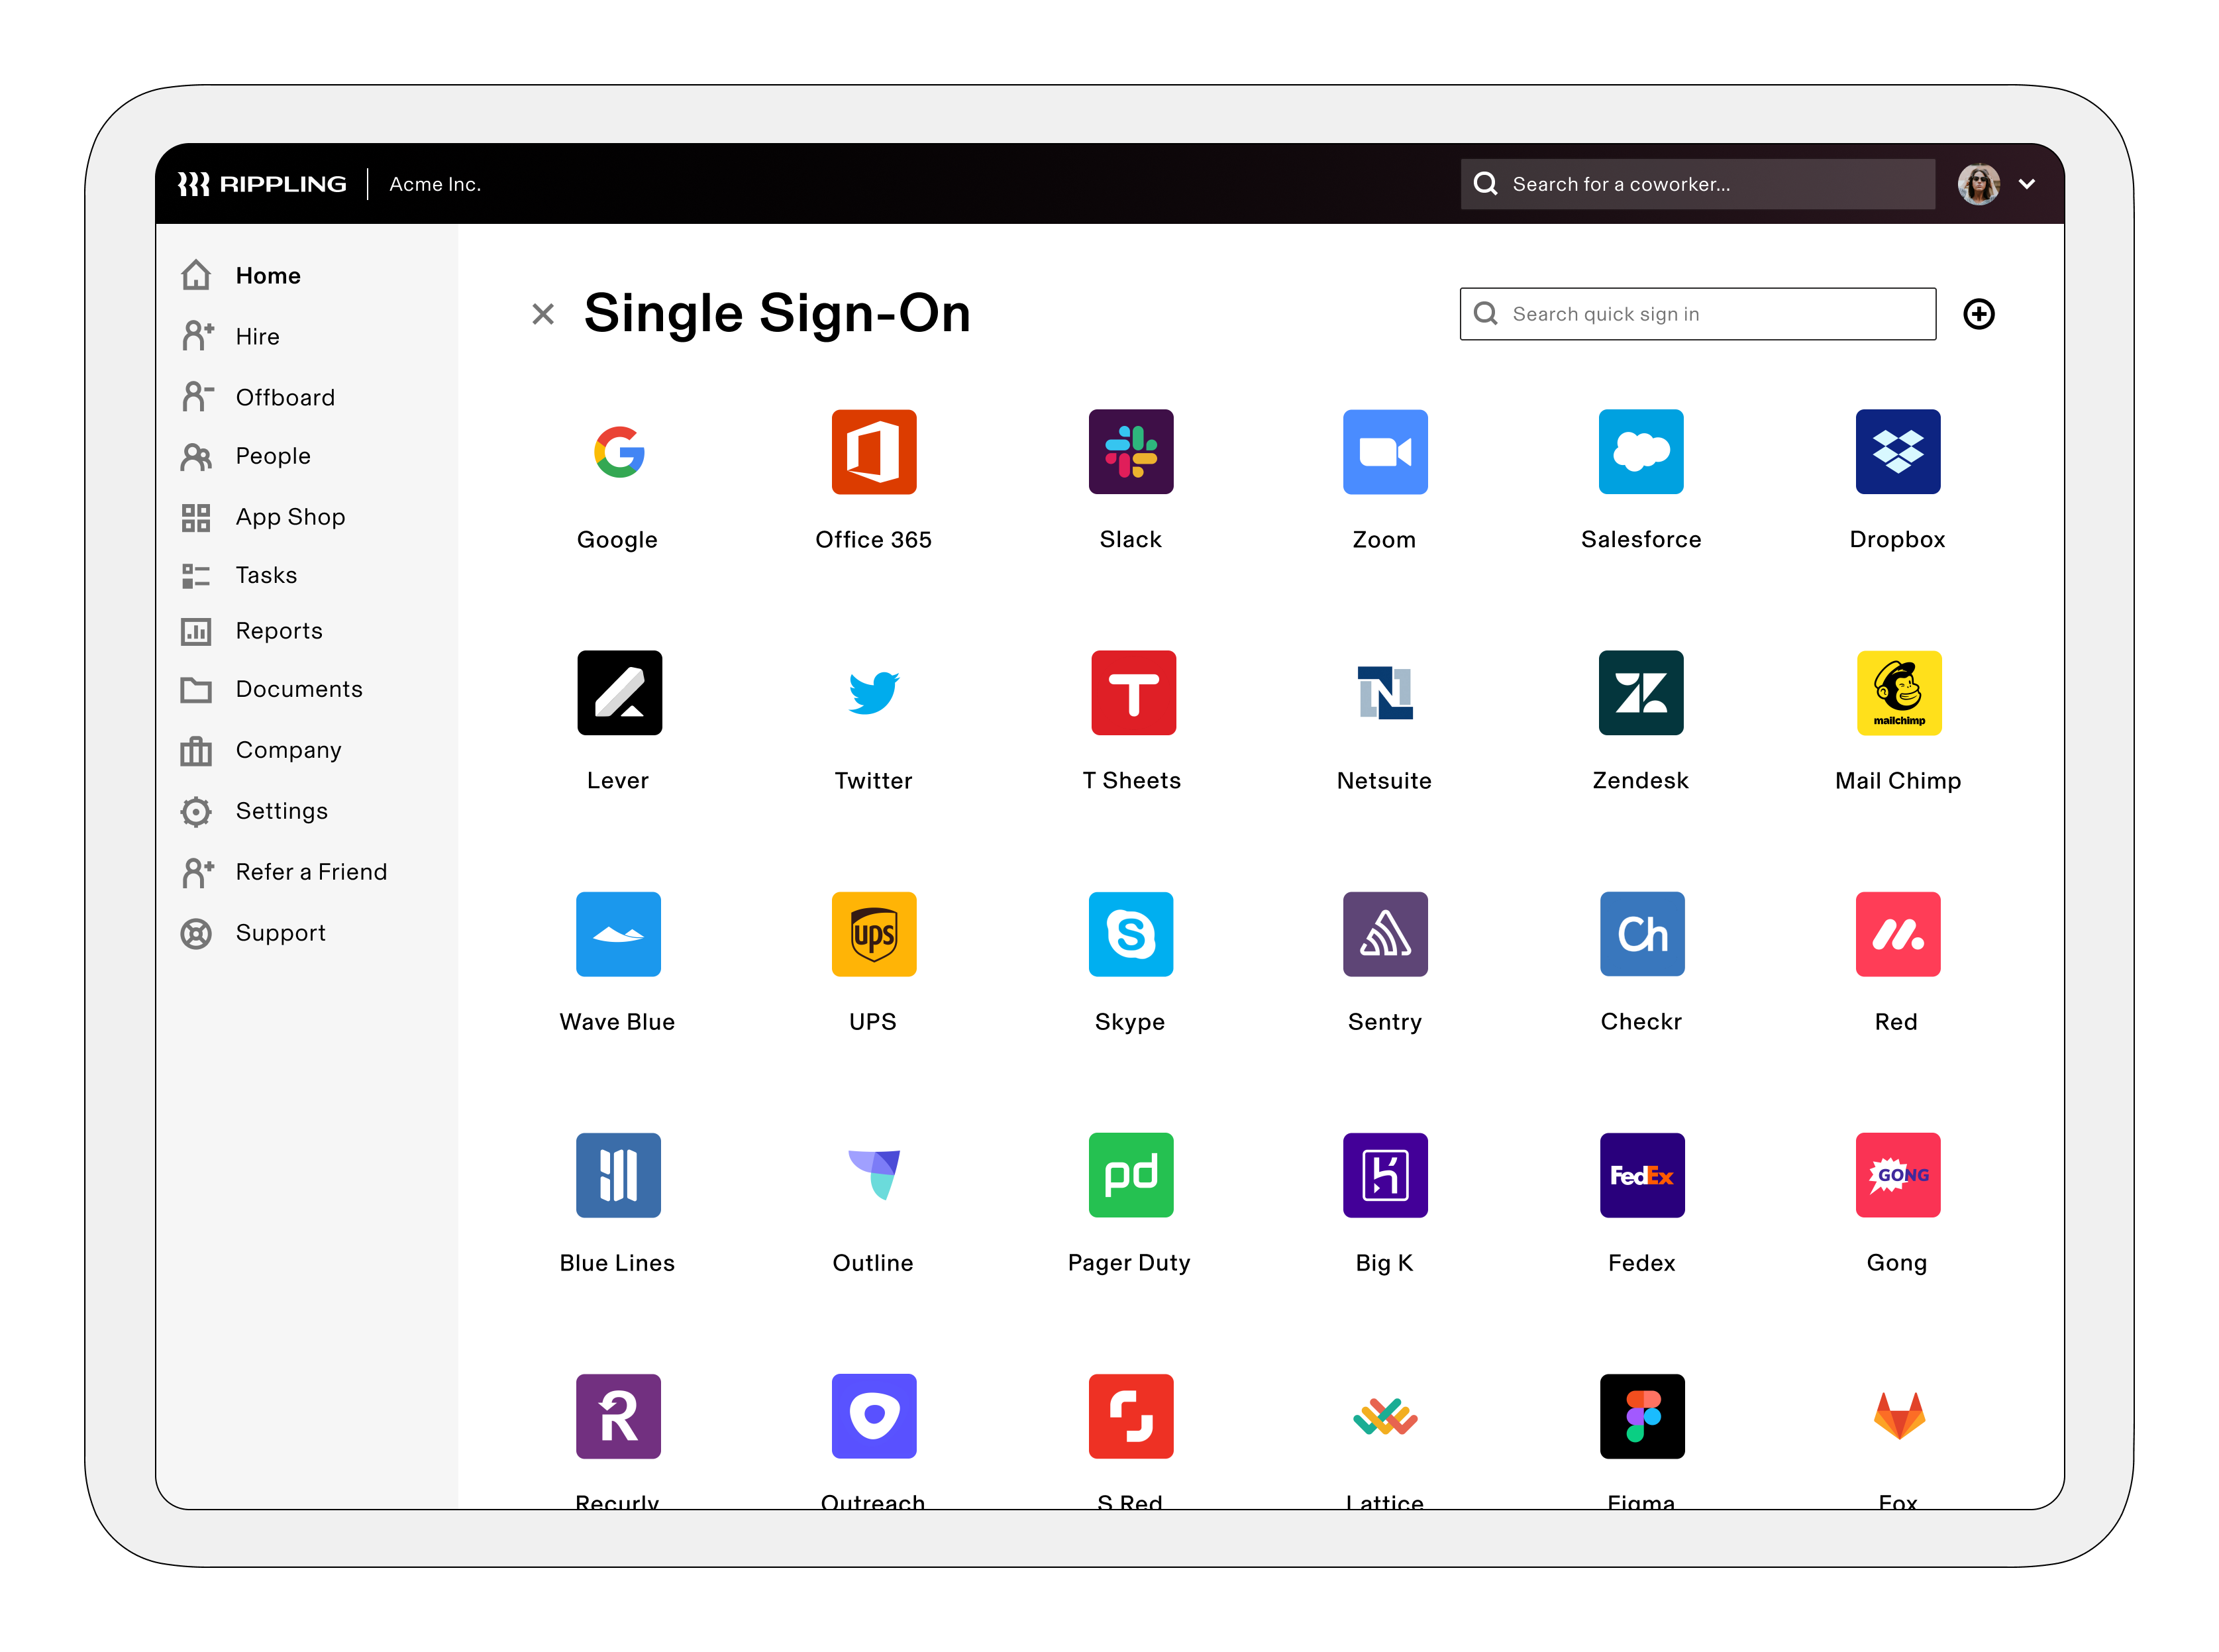 Single Sign-On allows your employees to access all of their SaaS apps in 1-click, right from their Rippling dashboard.